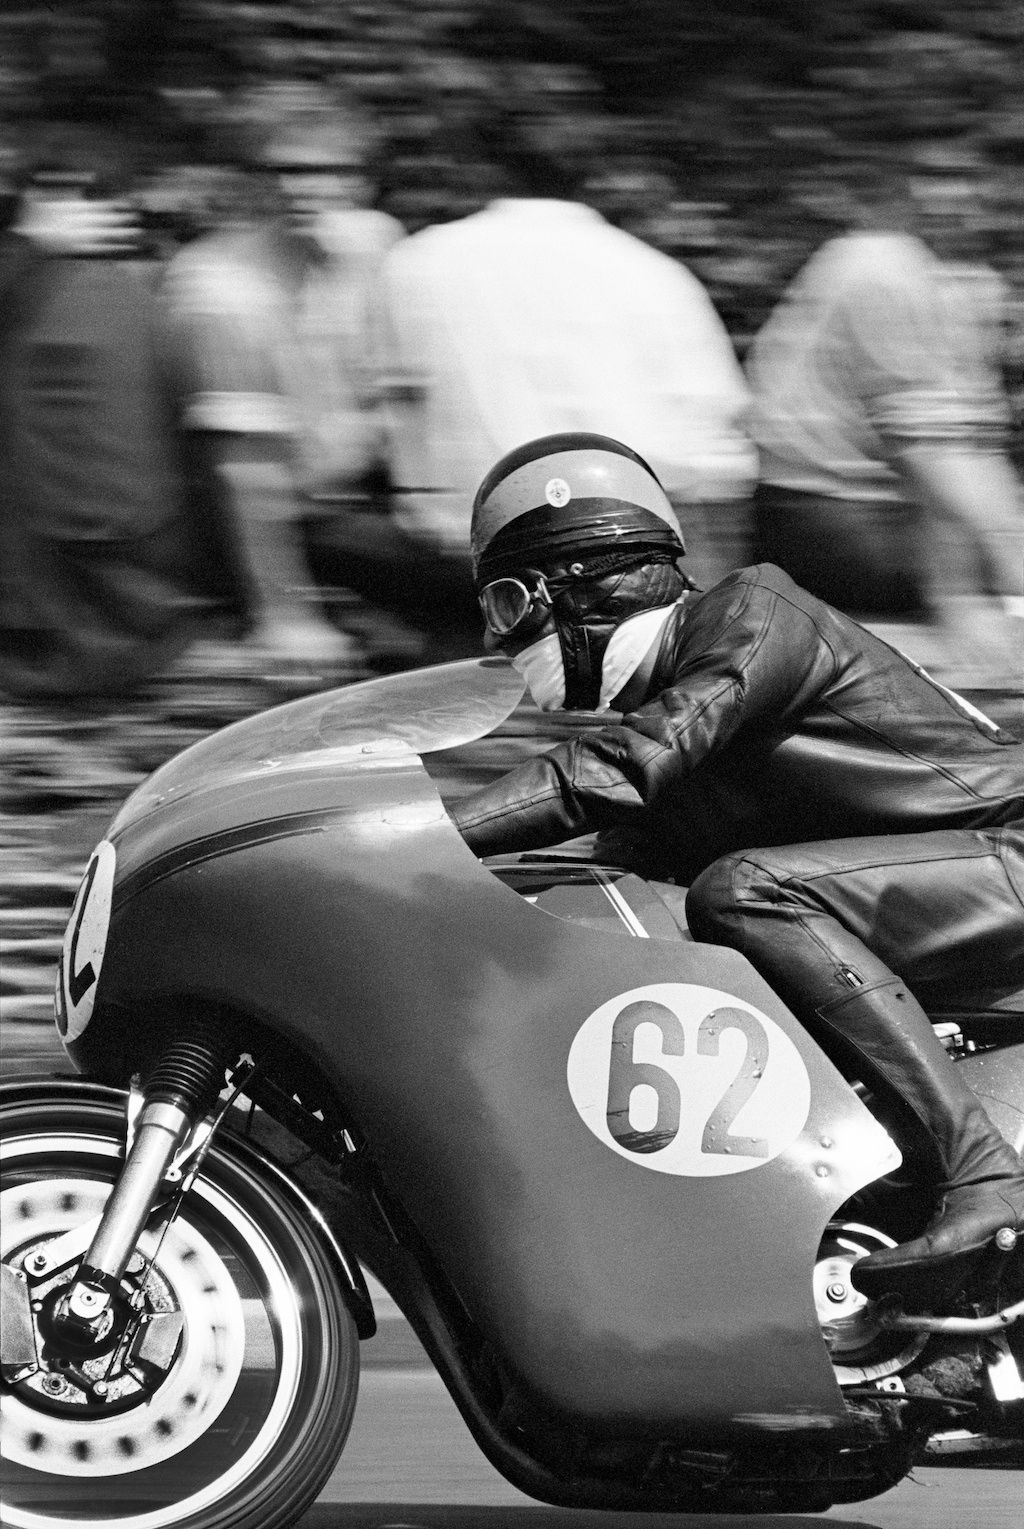 Action on Two Wheels, Isle of Man TT, 1967